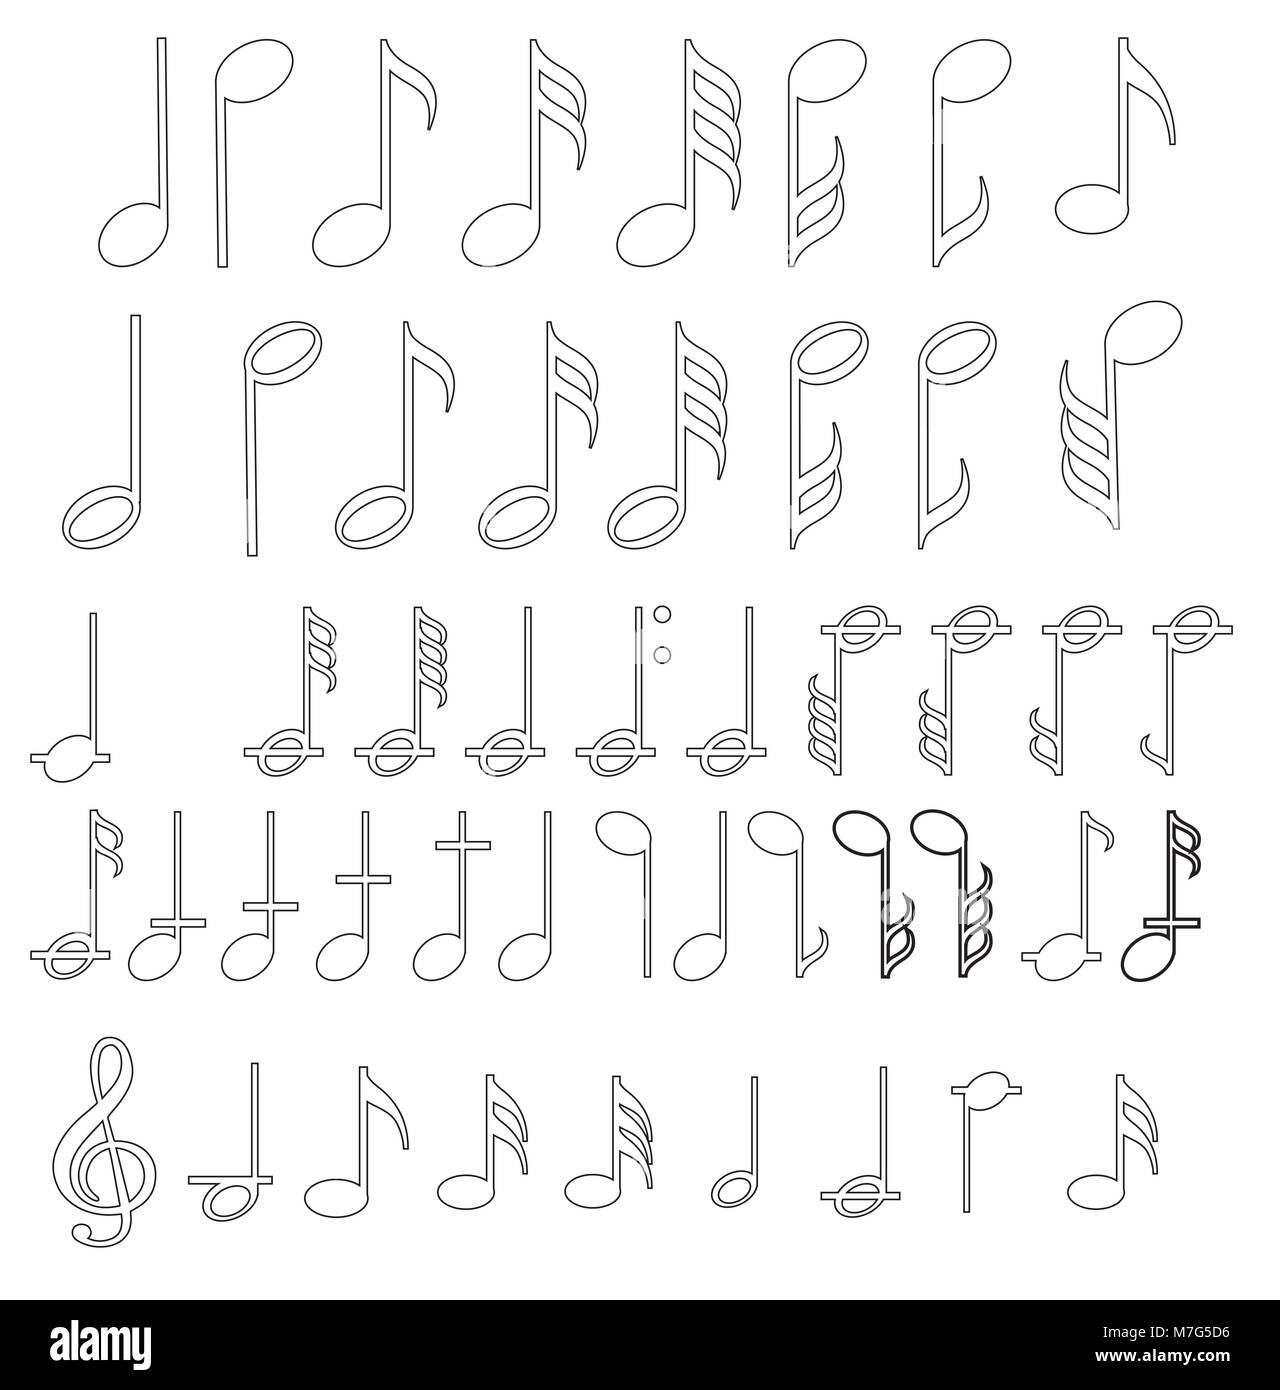 Music note background with different music symbols - Stock Image